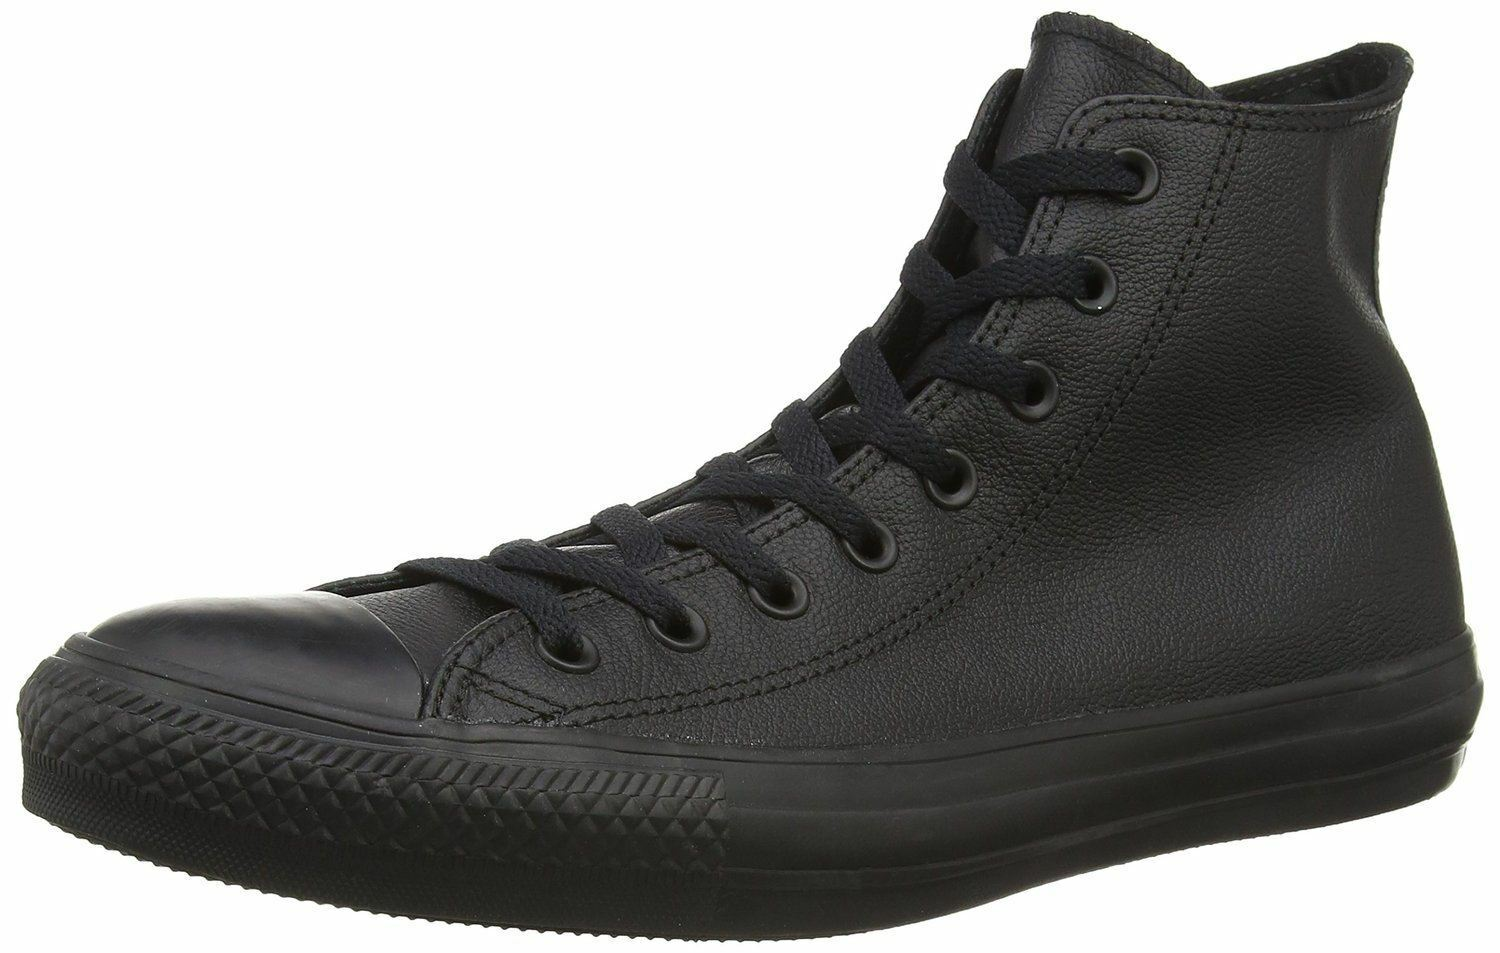 Converse Chuck Taylor All Star nero Hi Unisex Leather Trainers stivali